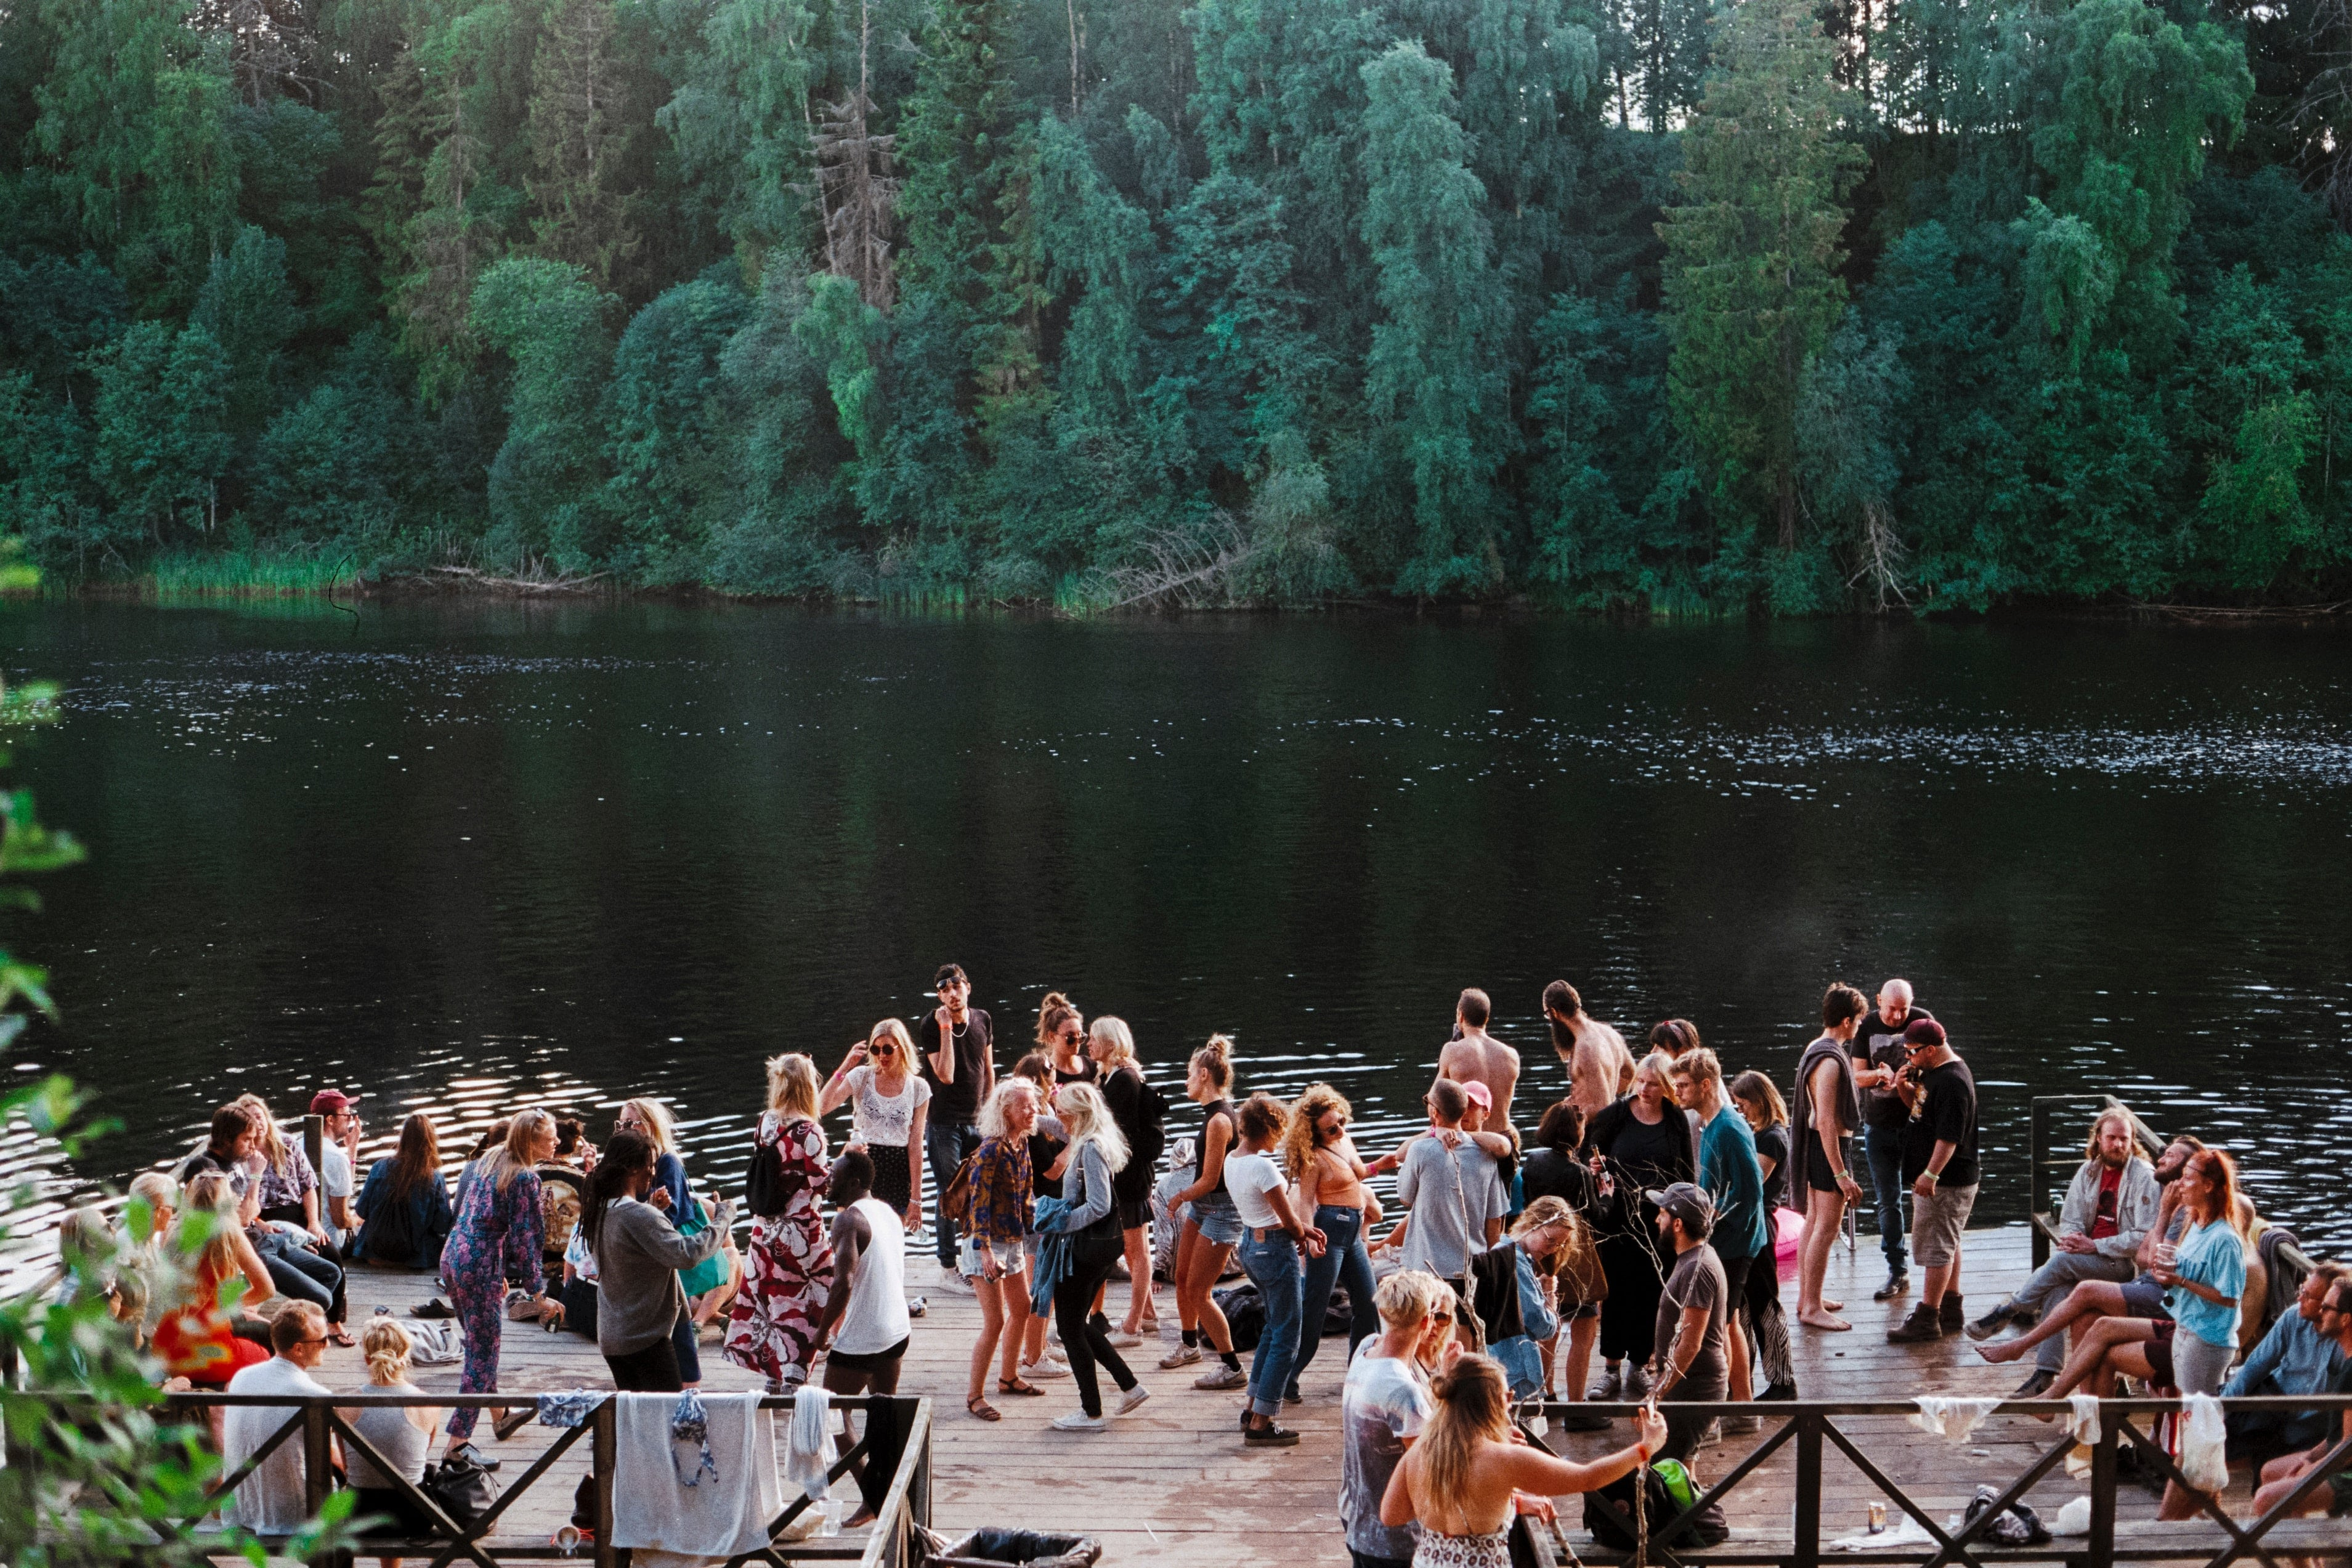 A Summer Day At The Lake To Inspire Office Image Courtesy Unsplash User Jens Johnson